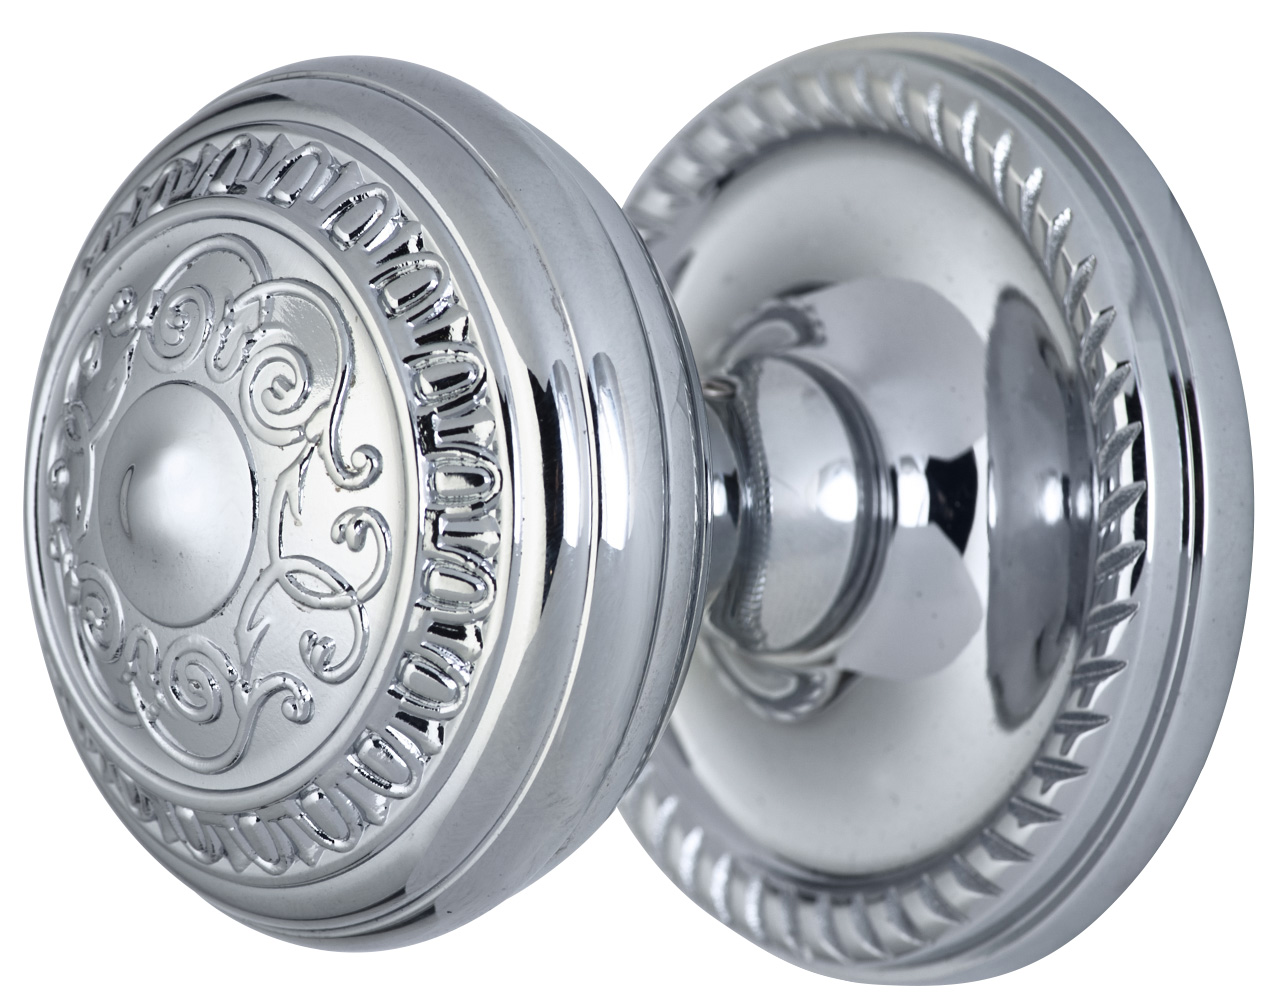 2 Inch Romanesque Door Knob With Rope Rosette (Polished Chrome Finish)